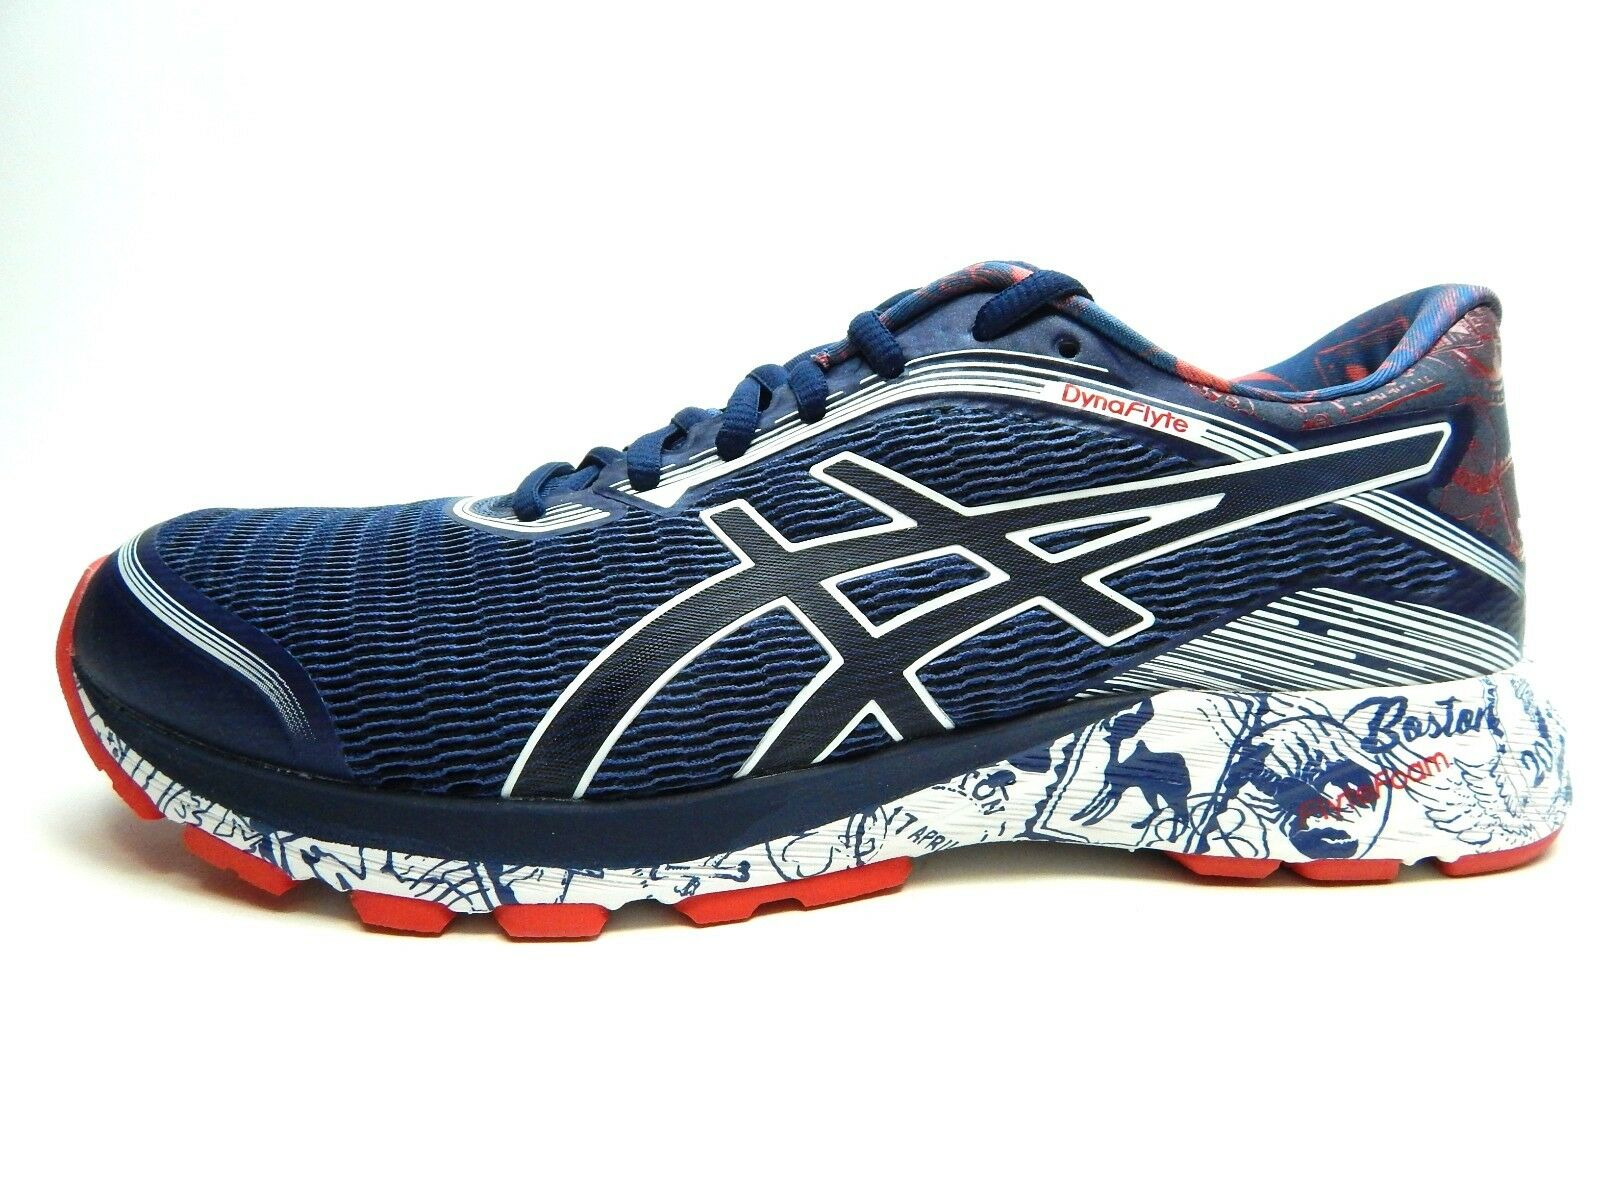 ASICS DYNAFLYTE T75AQ 2017 INDIGO BLUE WHITE WOMEN SHOES SIZE SIZE SHOES 10 & 11 d92732